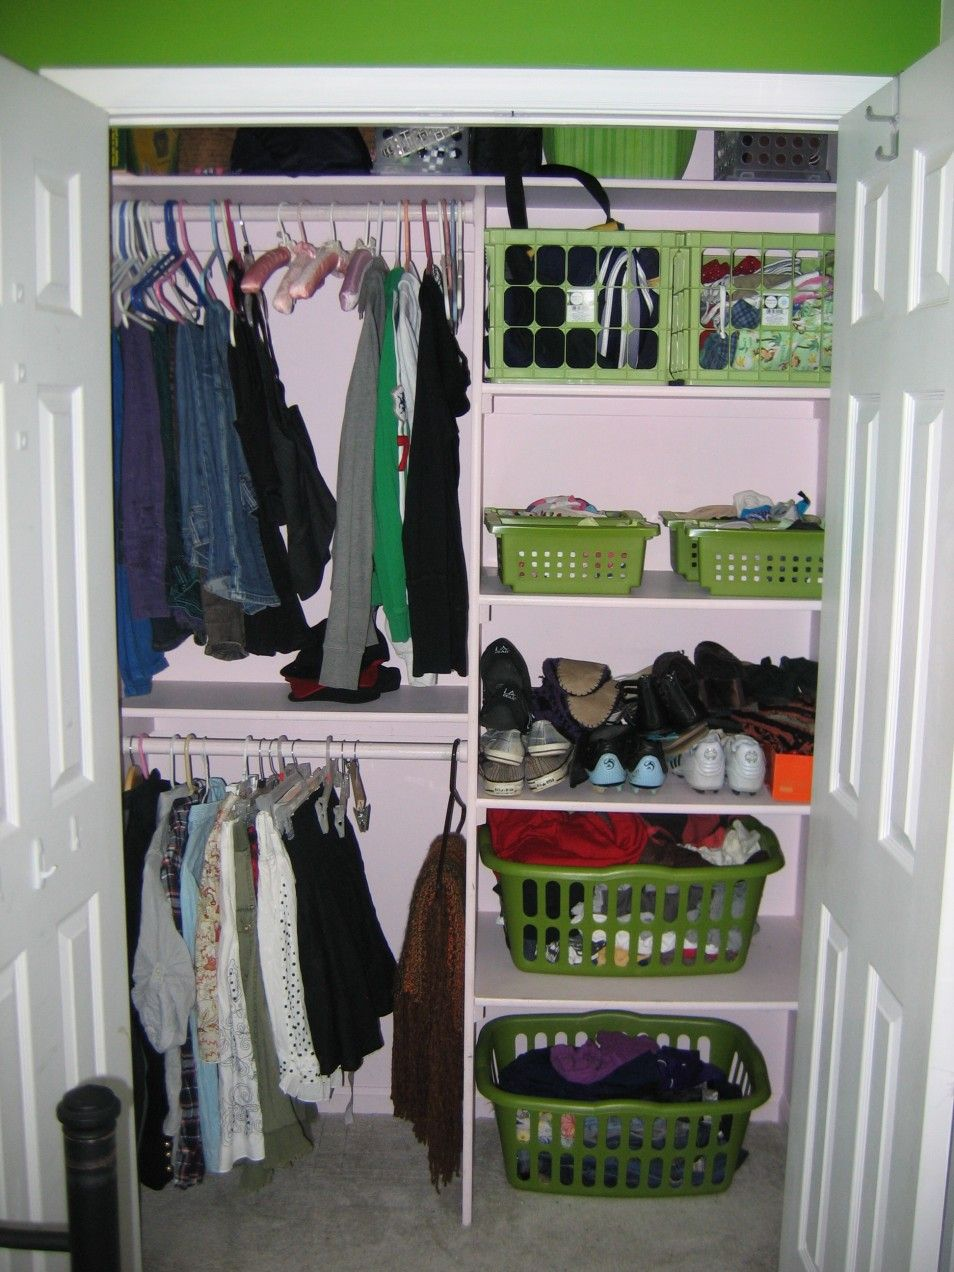 Creative Closet Organization Ideas Part - 41: Furniture Ideas Cool White Small Closet With Green Basket In Green Bedroom  Design Captivating Small Closet Organization Ideas With 42 Astonish  Beautiful ...